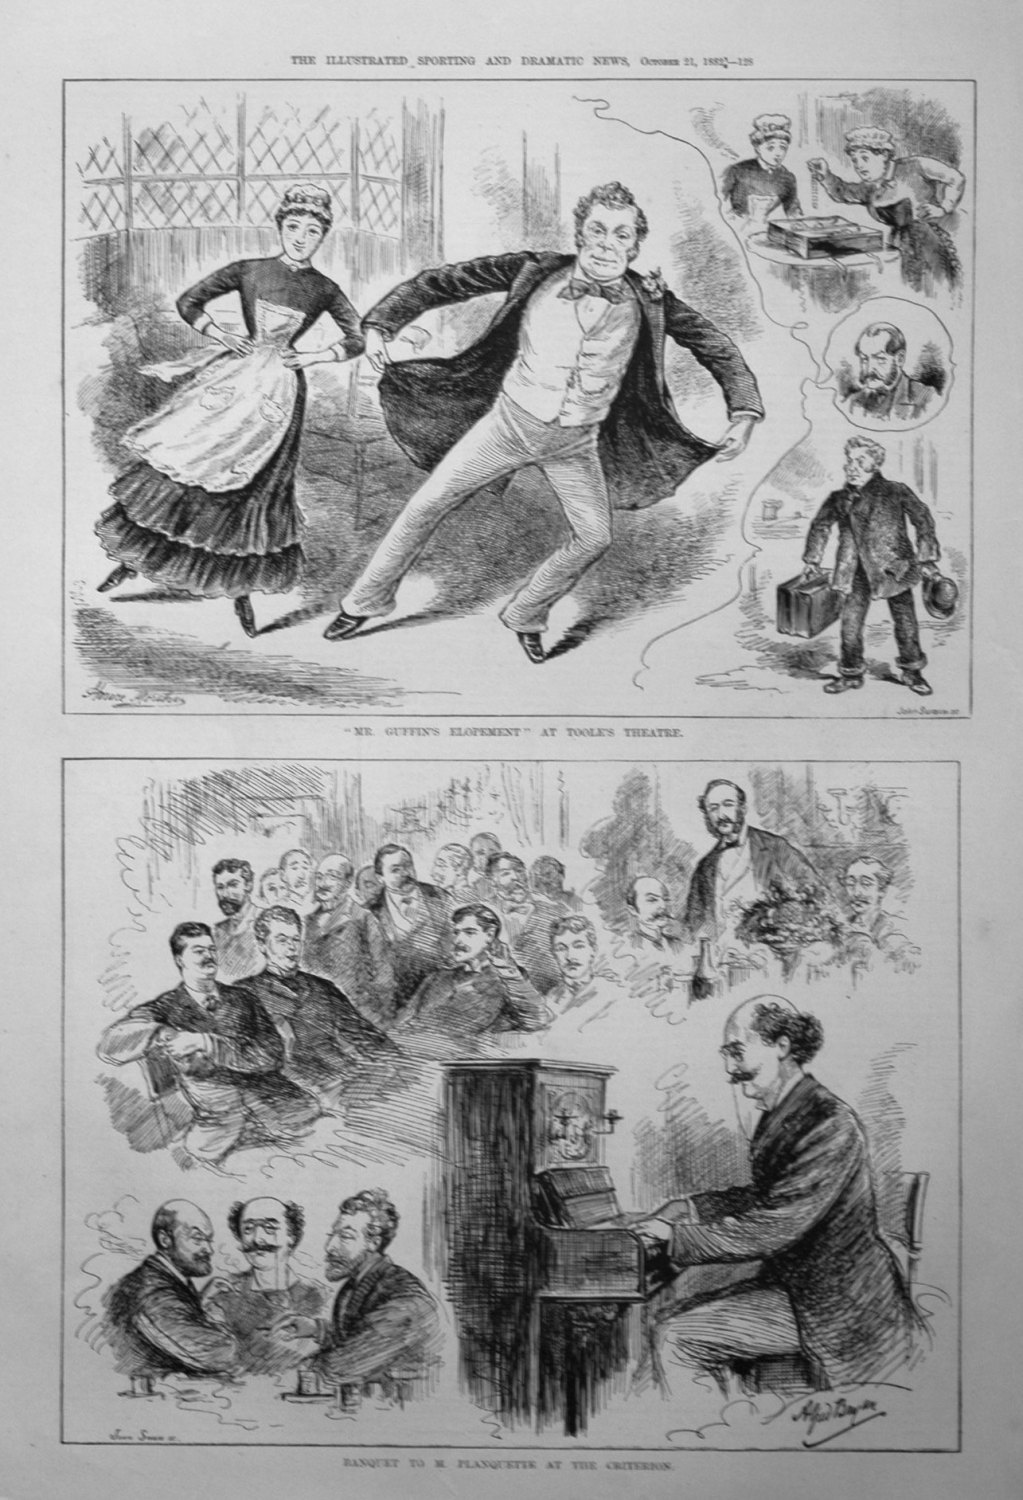 Banquet to M. Planquette at the Criterion. 1882